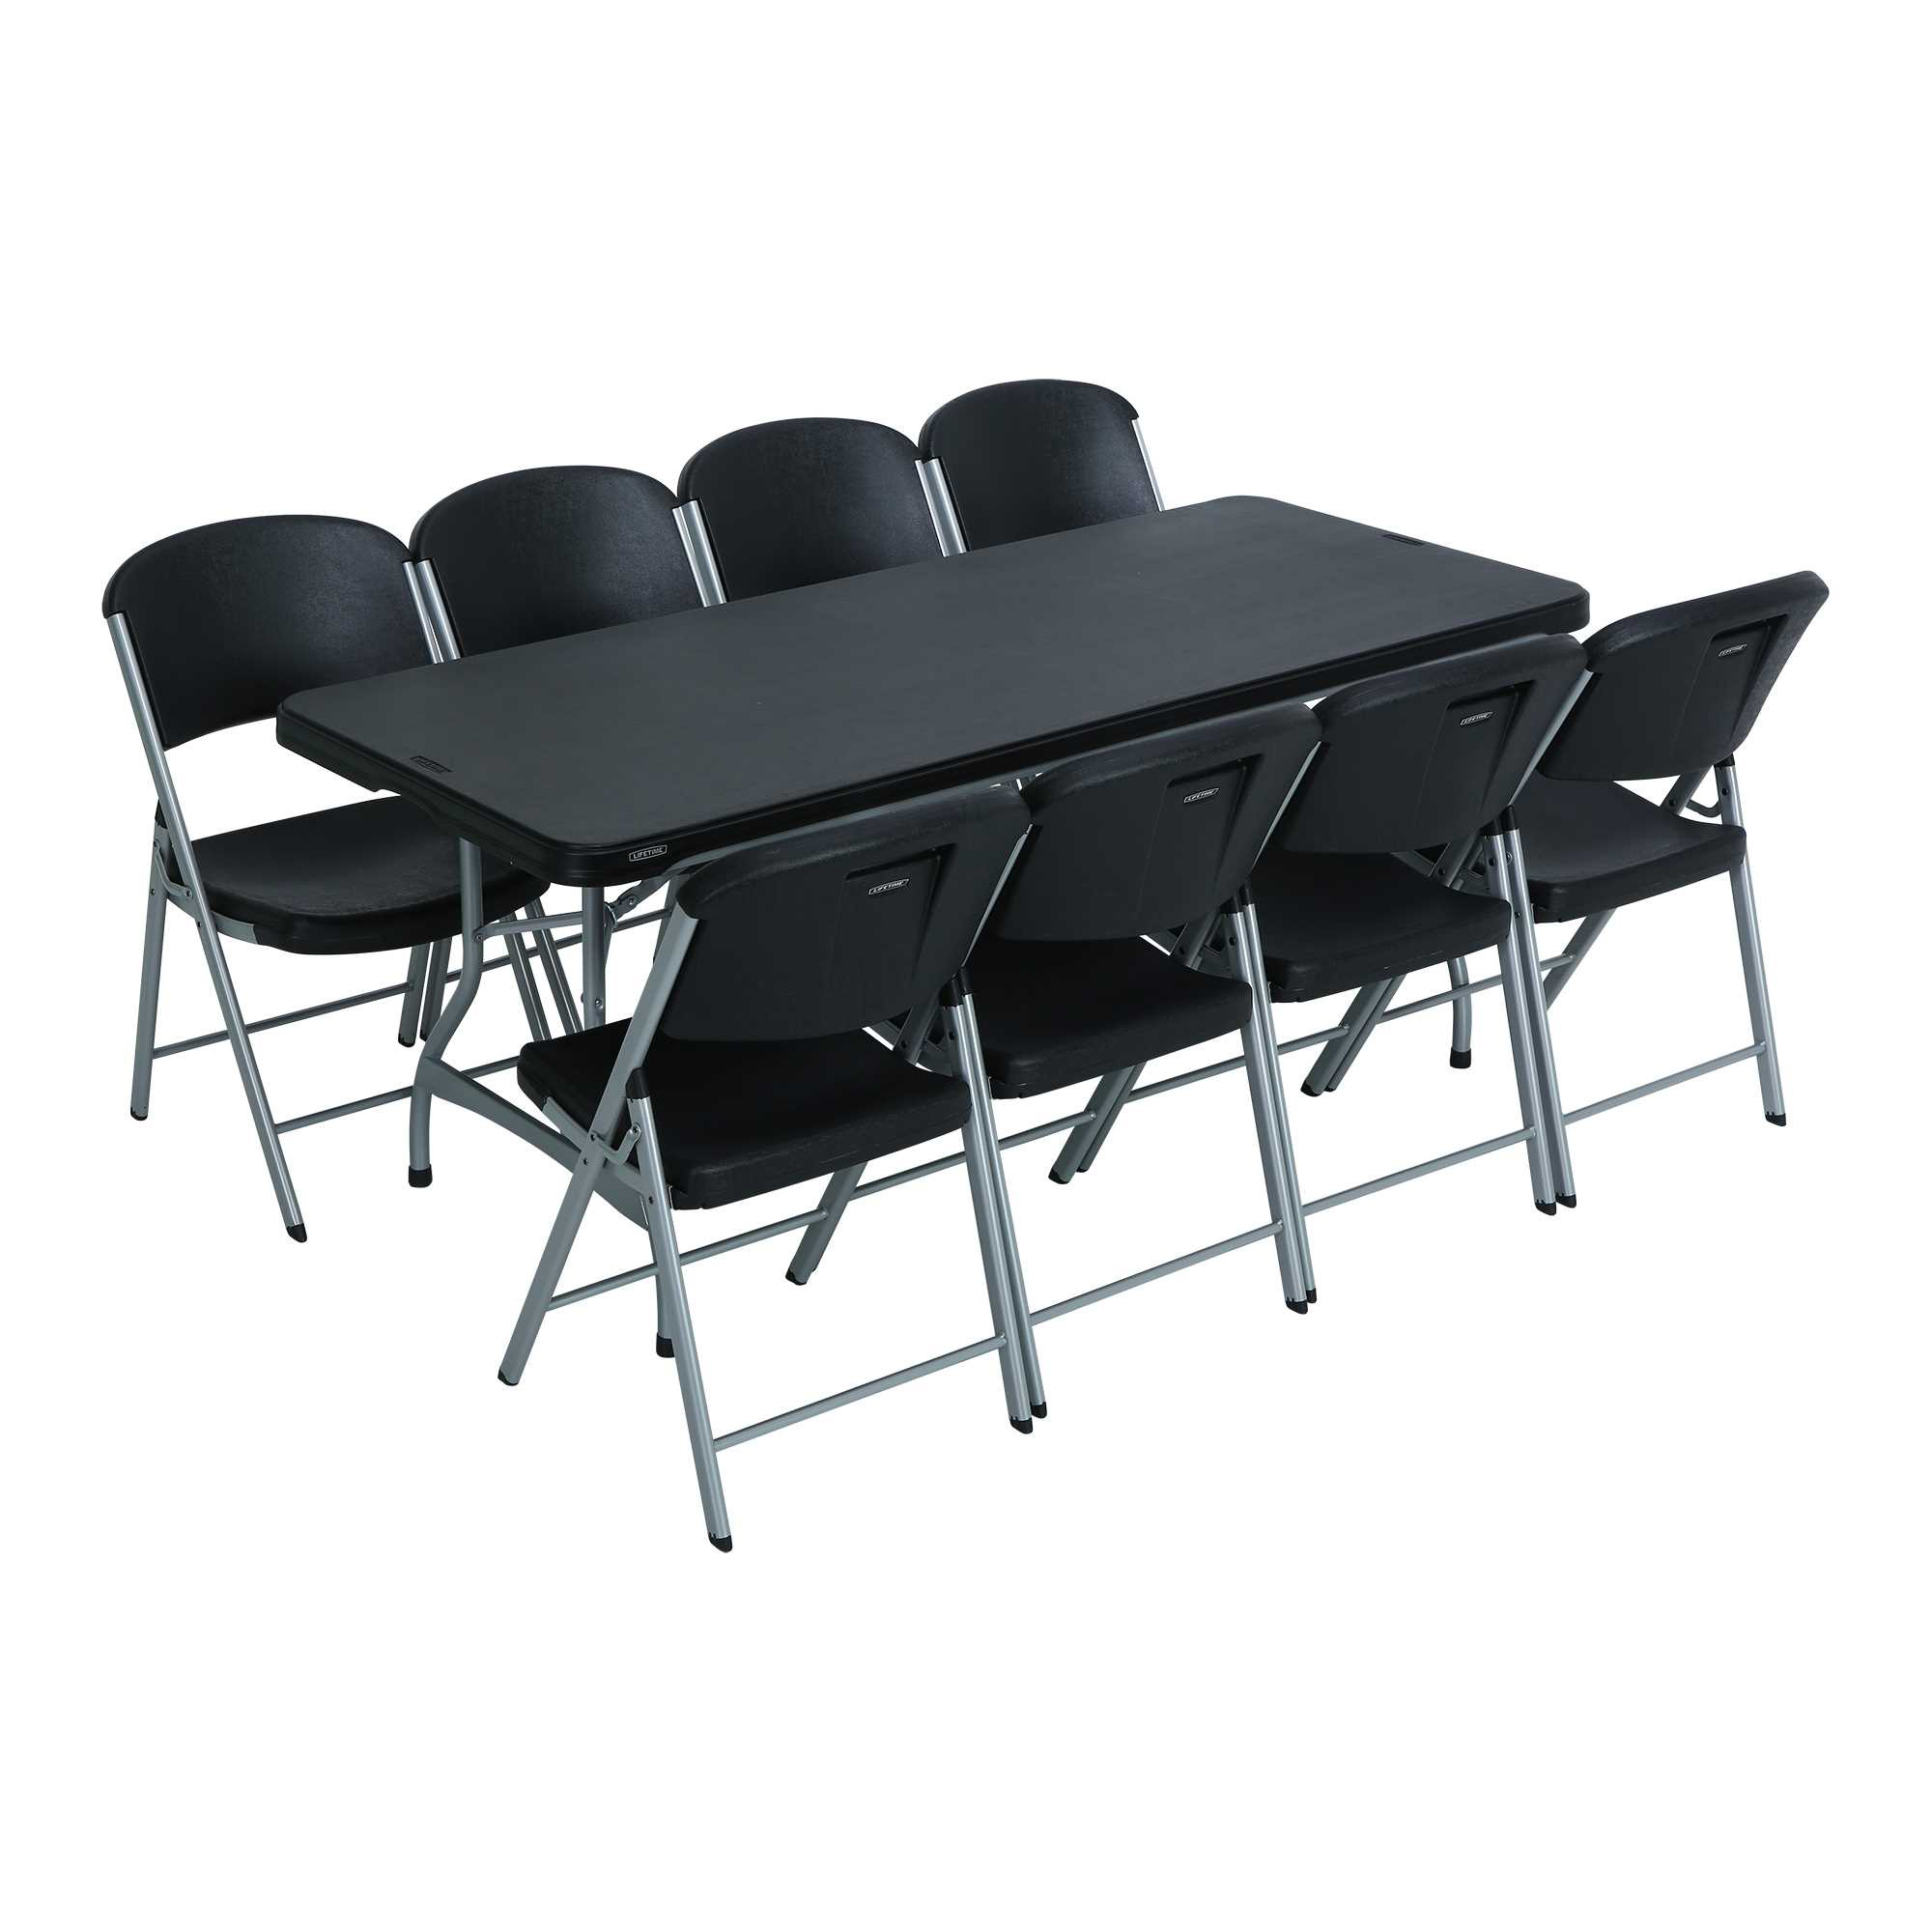 Lifetime 6 Ft Rectangular Tables  Chairs Black Fast